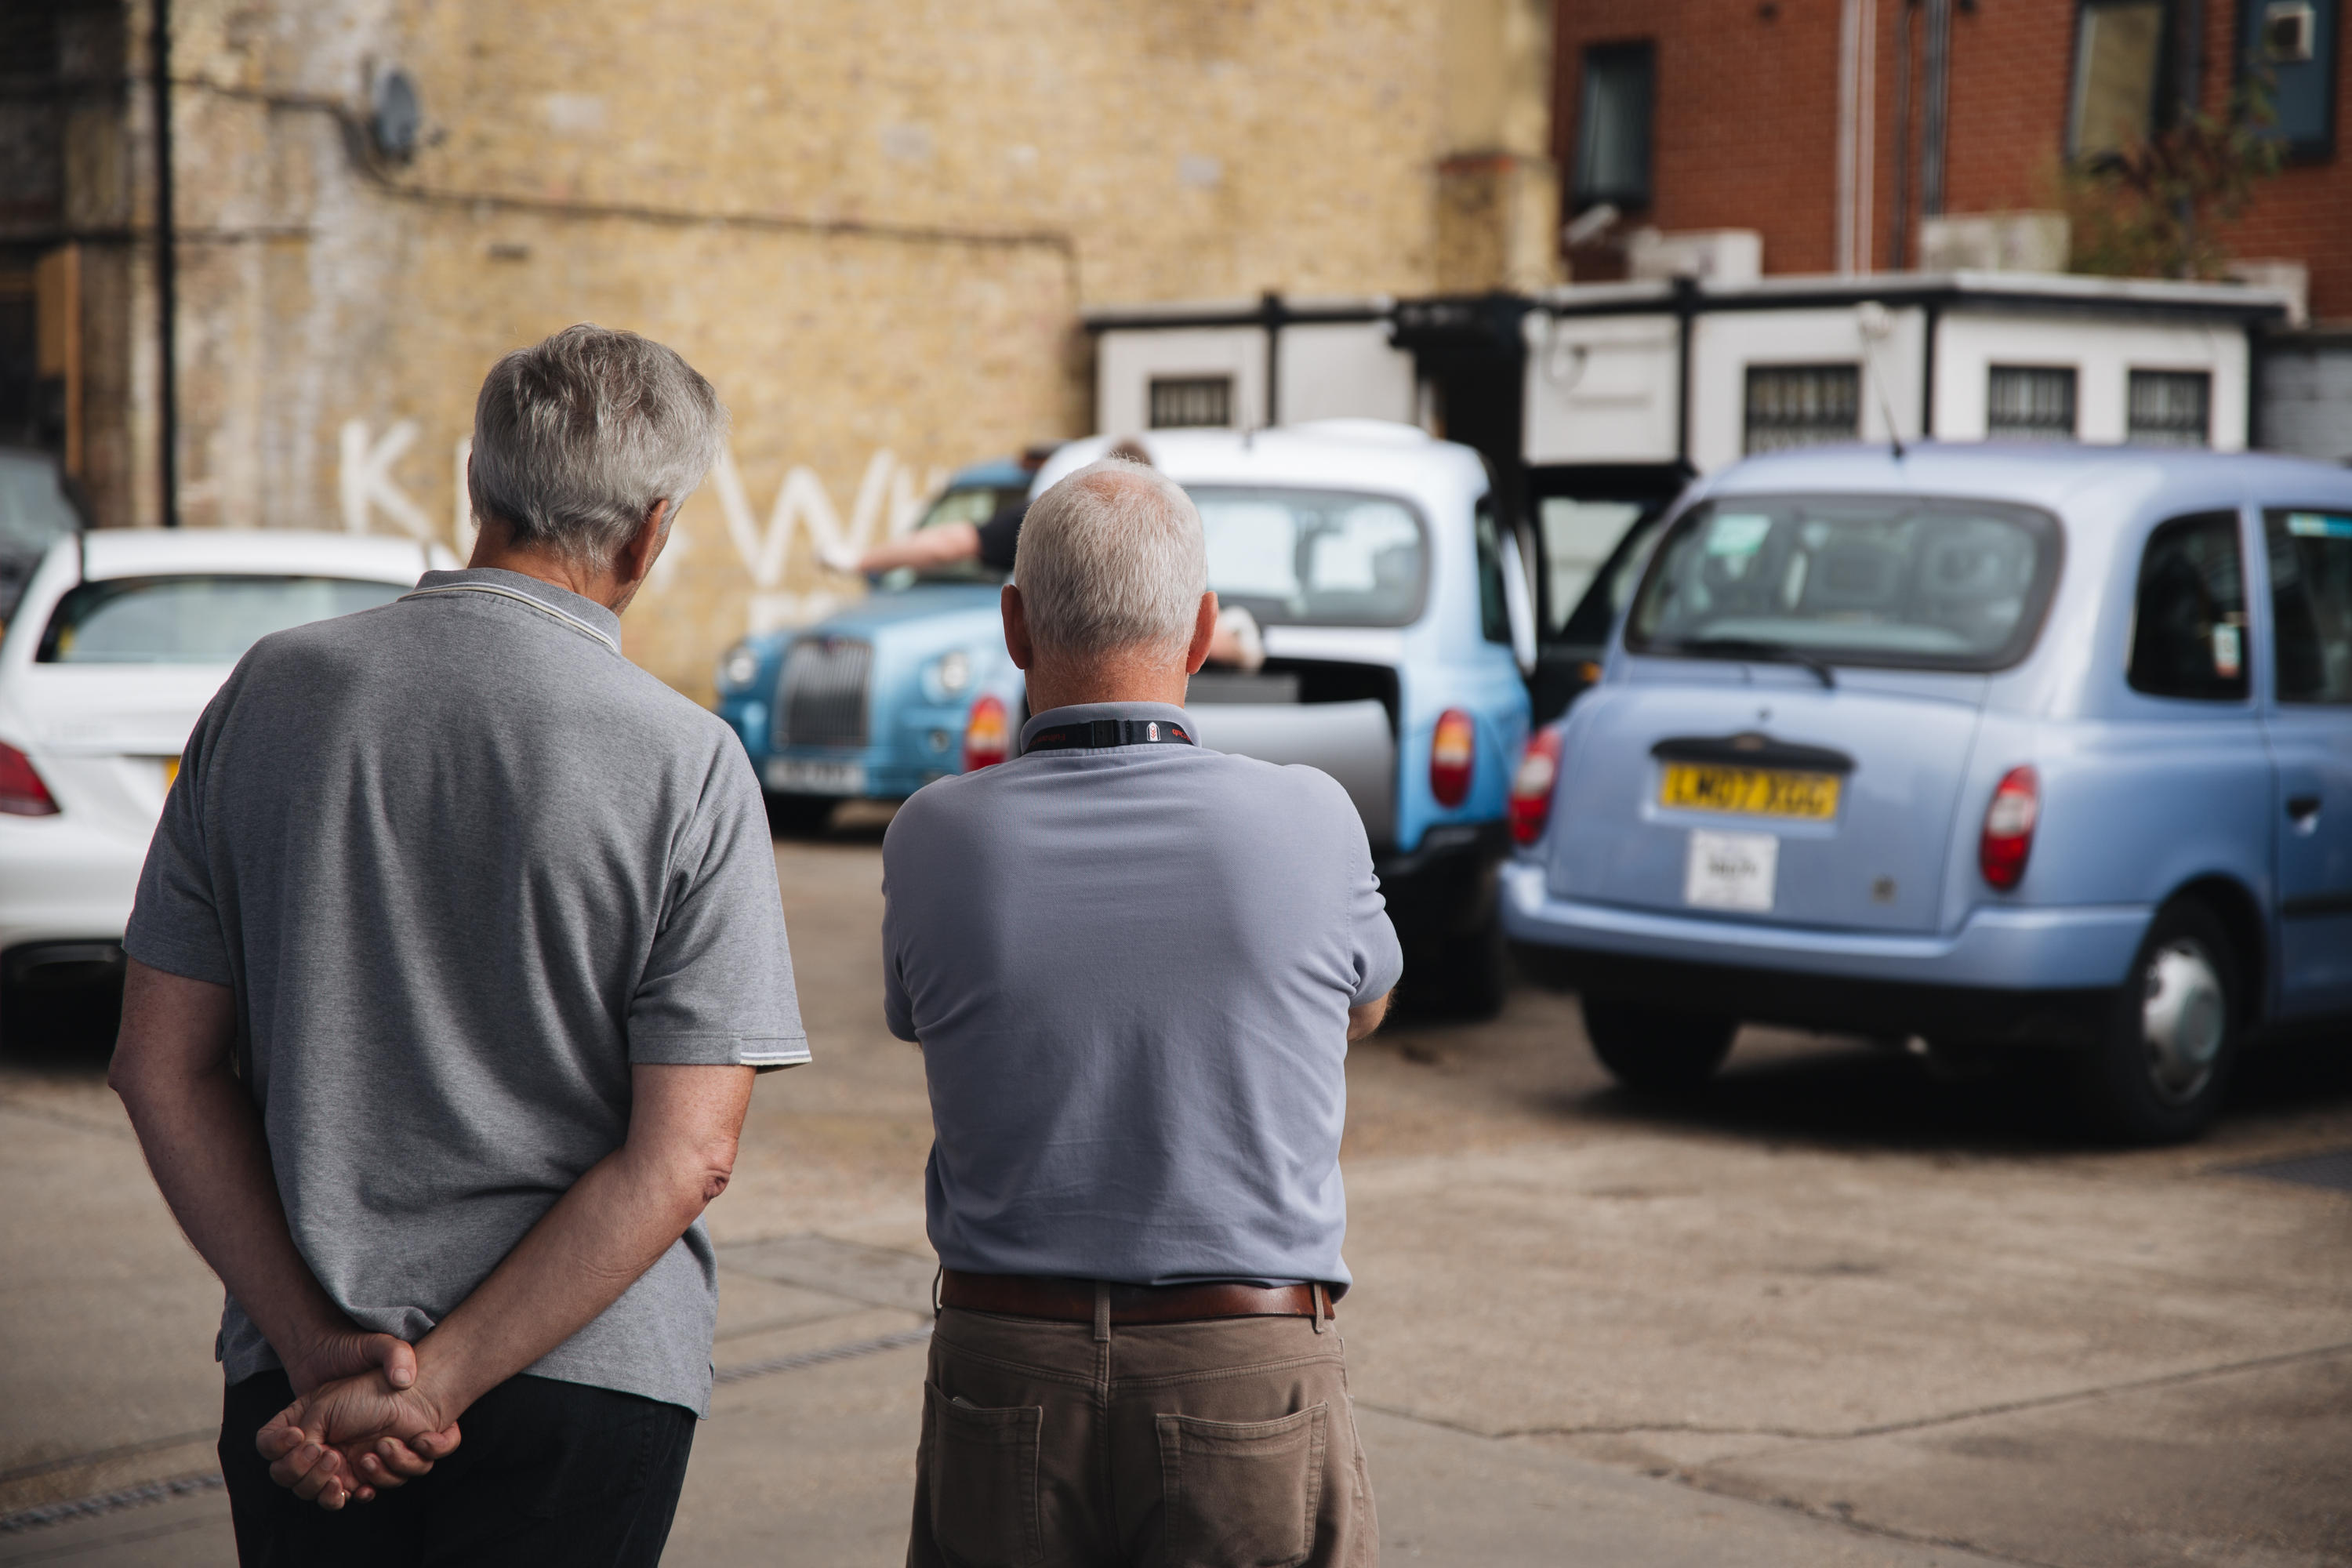 Two taxi drivers take a moment to relax and watch their cars being serviced in the Southwark cab station. The man on the right (who requested not to be named) was waiting to have his payment machines removed, having just finished his last ever trip after 48 years of driving.